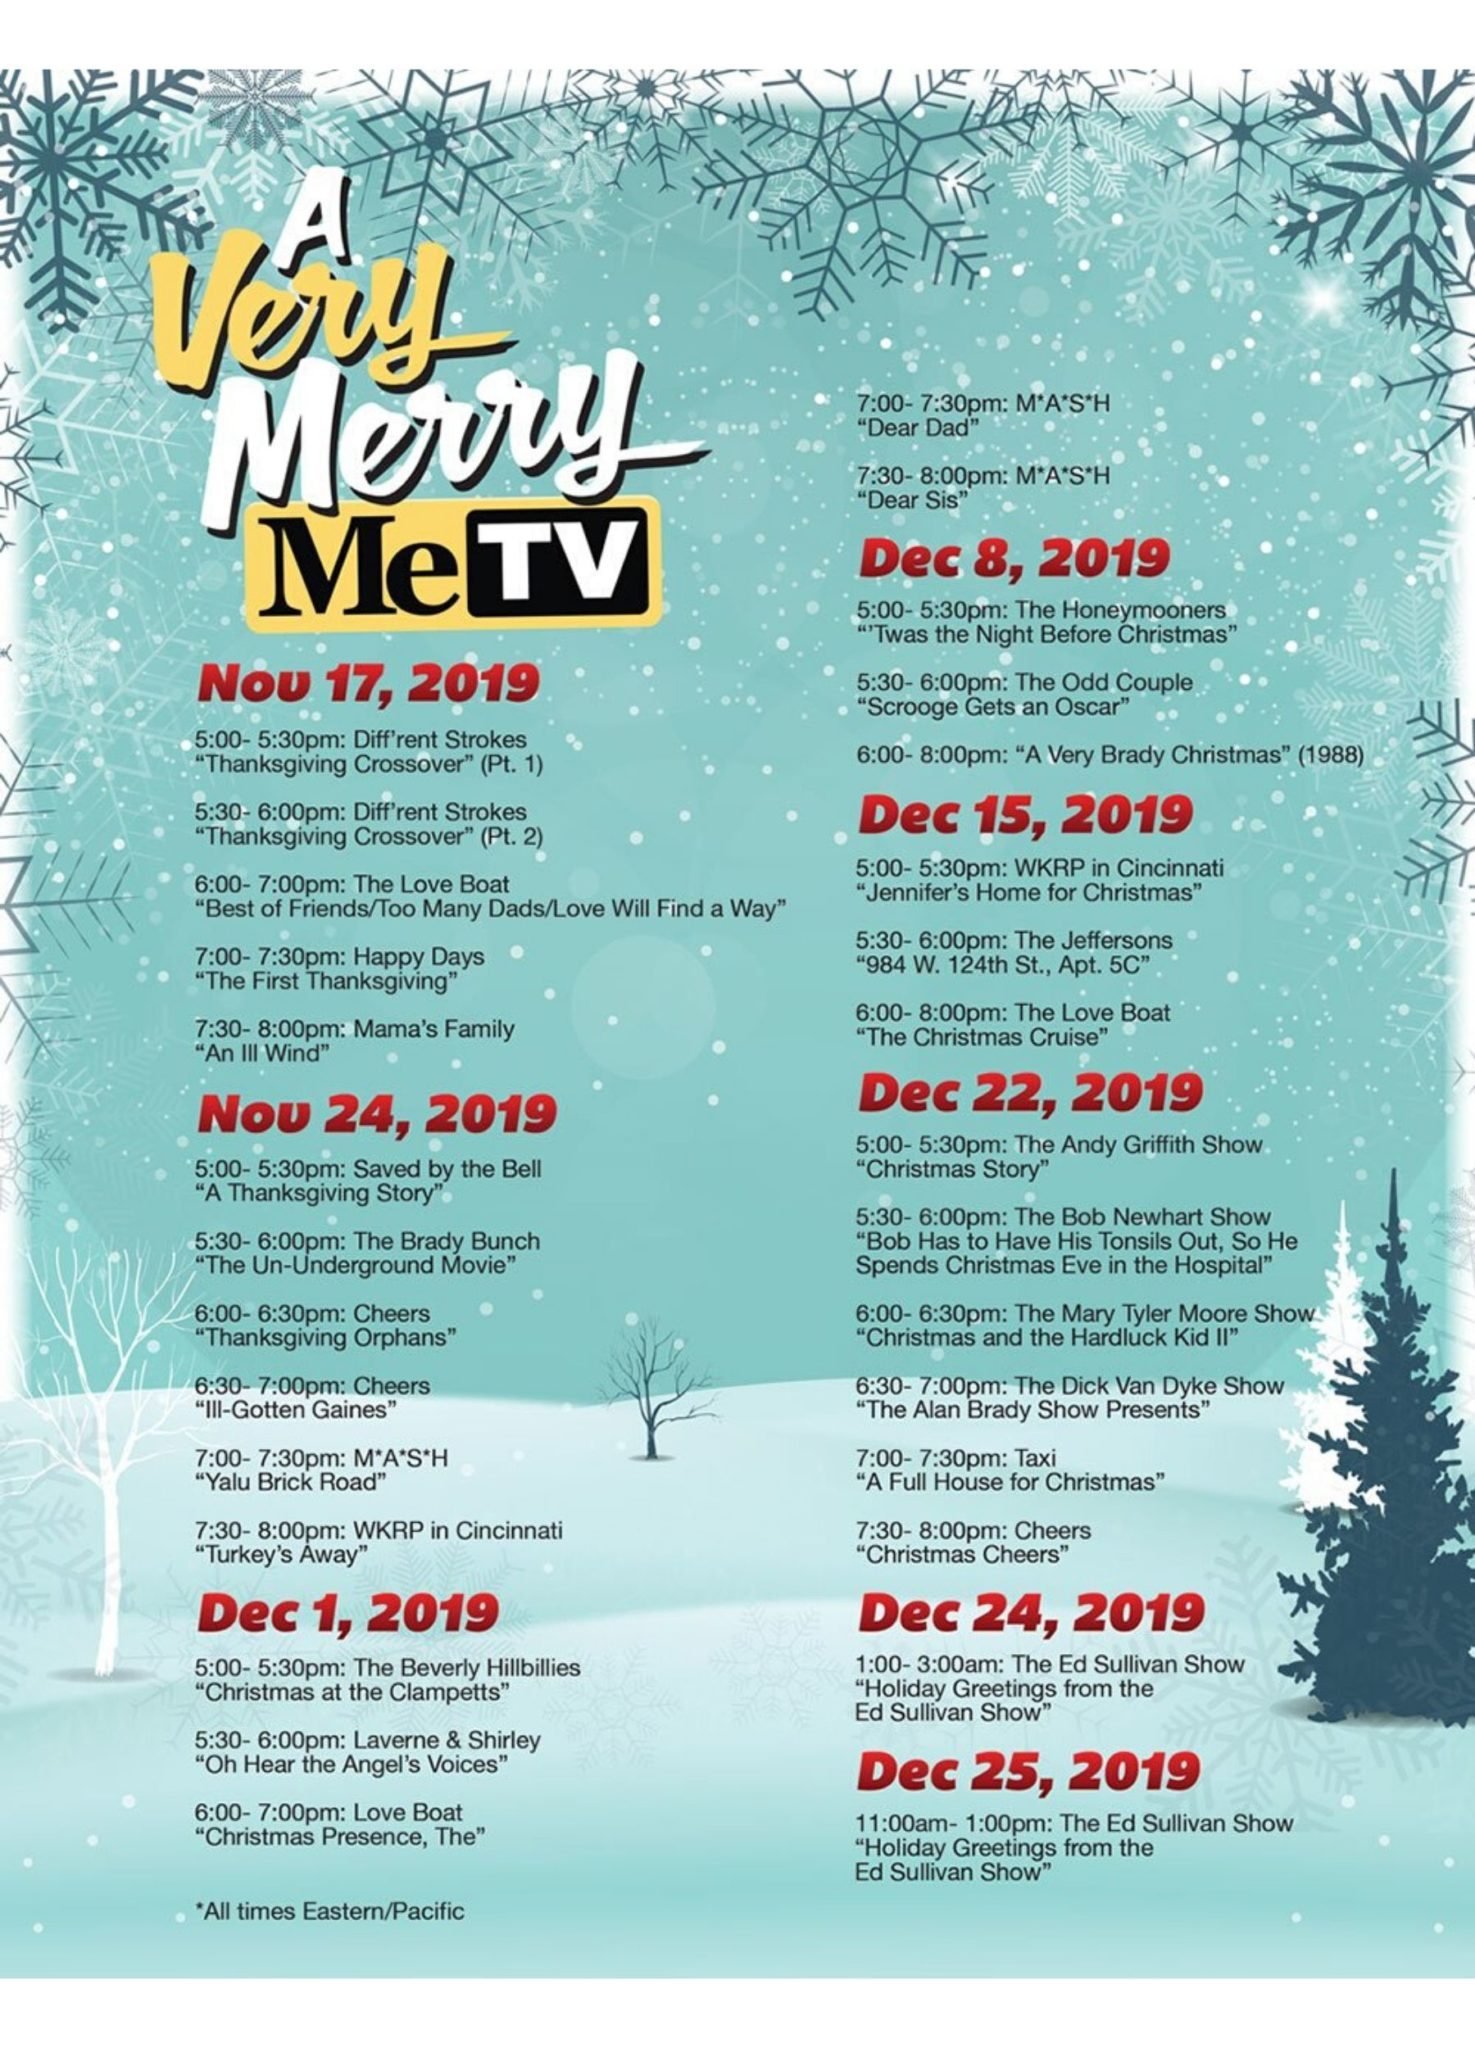 Metv Christmas Schedule 2020 MeTV is Airing Classic Holiday Episodes For Free all Through